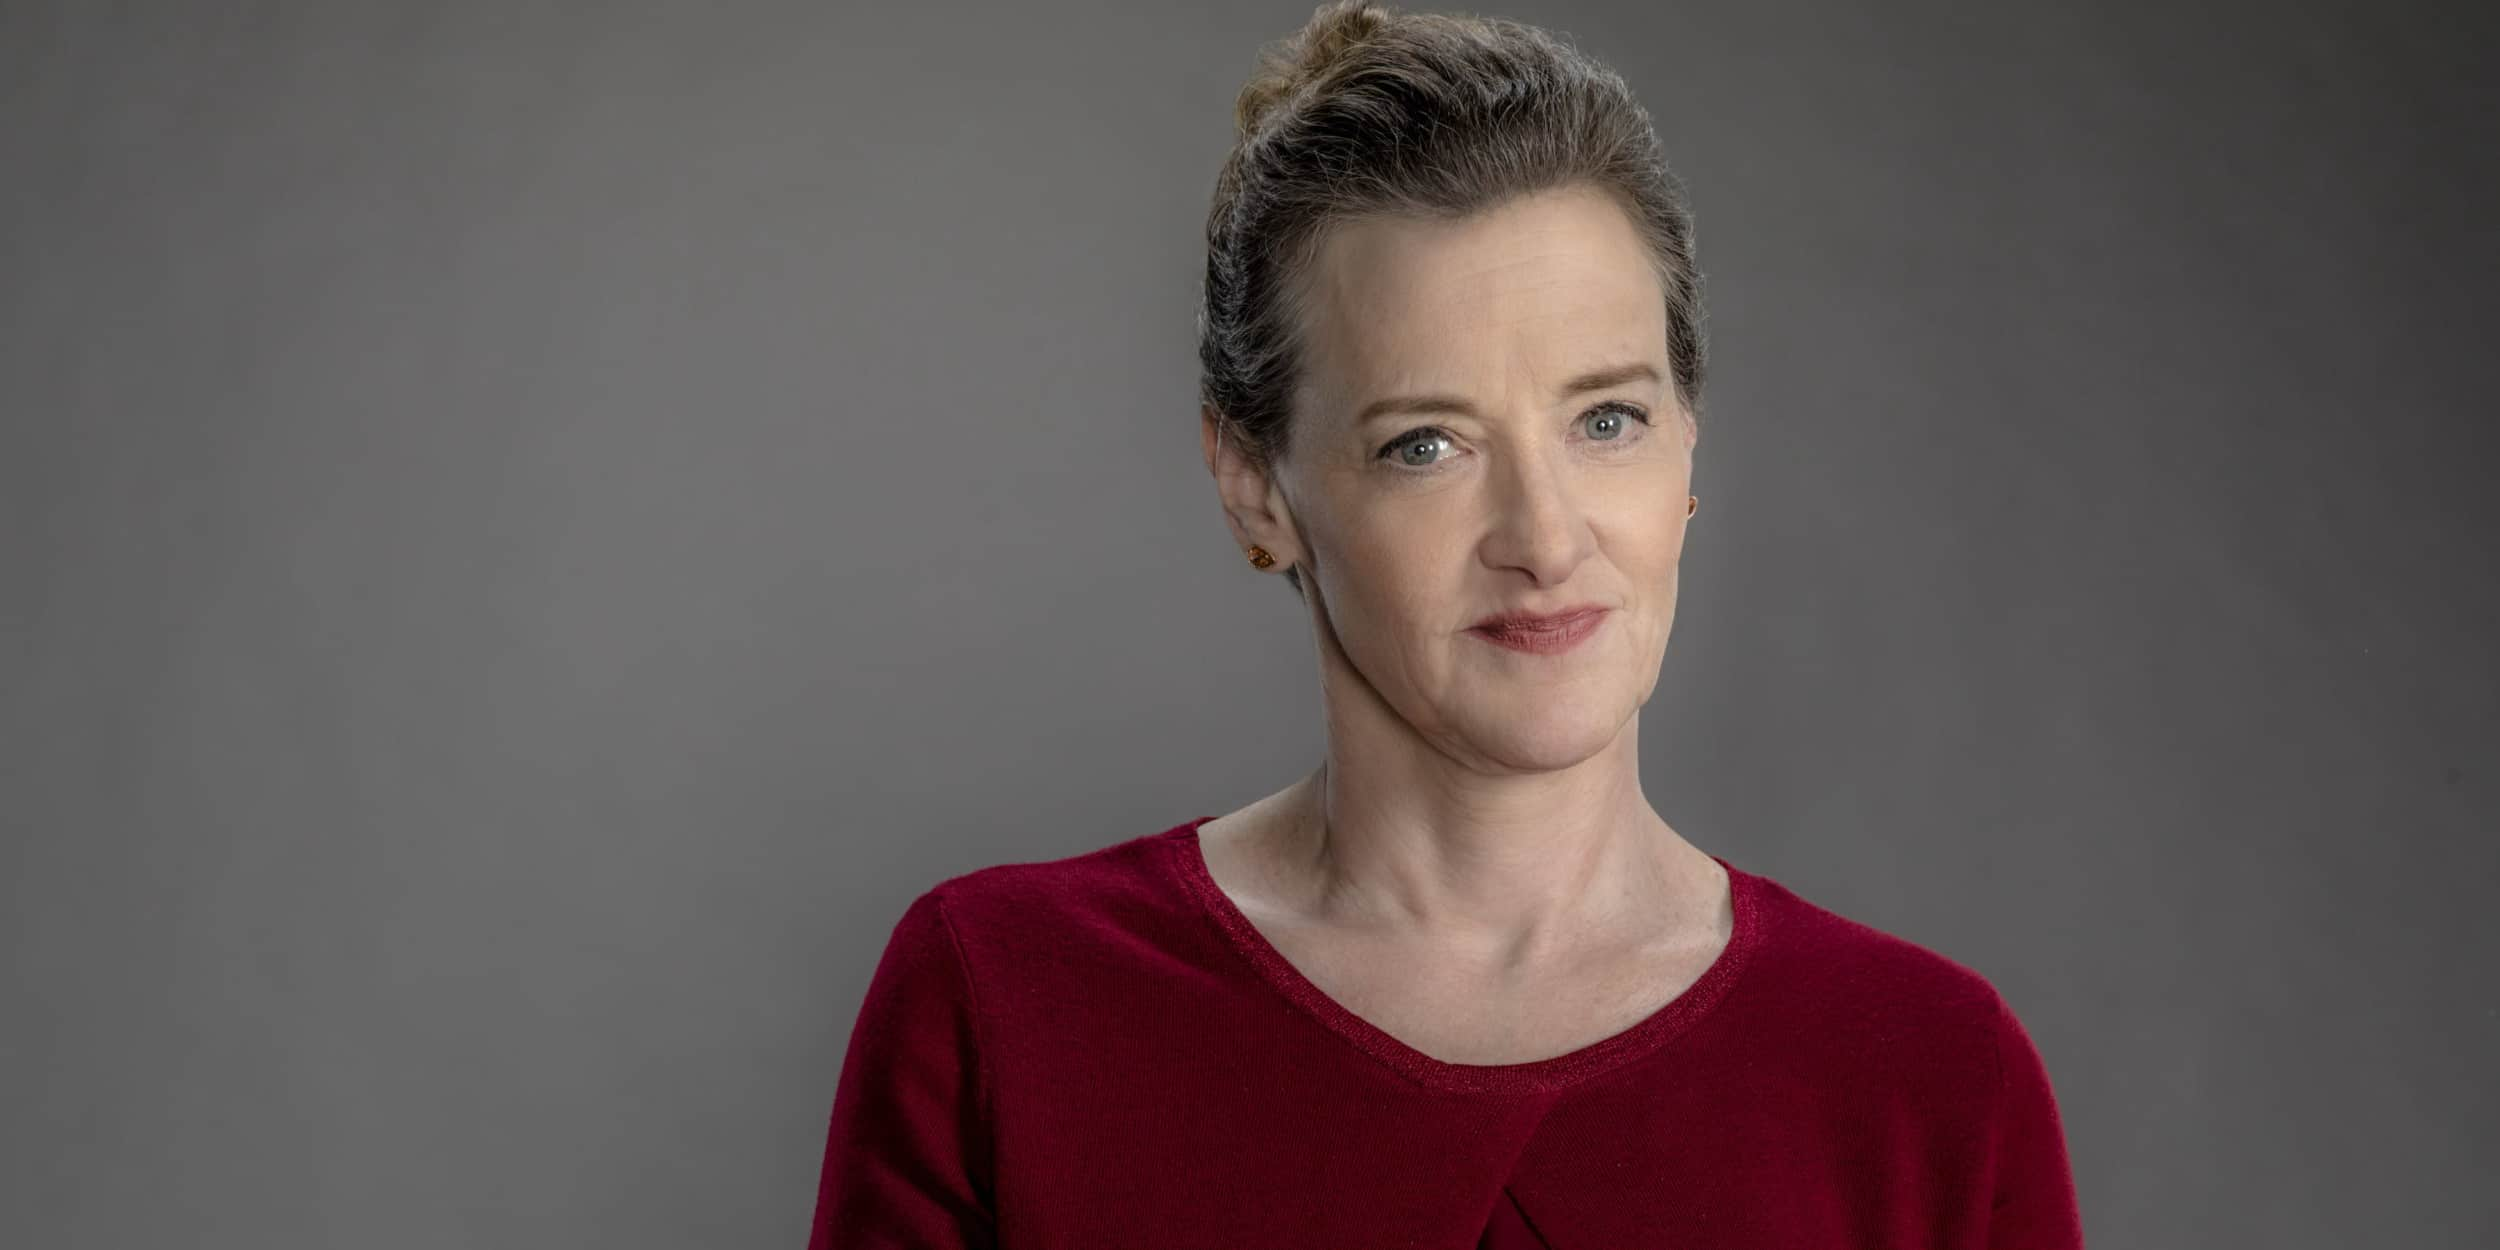 Who S Joan Cusack From Shameless Wiki Husband Richard Burke Family From wikipedia, the free encyclopedia. wiki husband richard burke